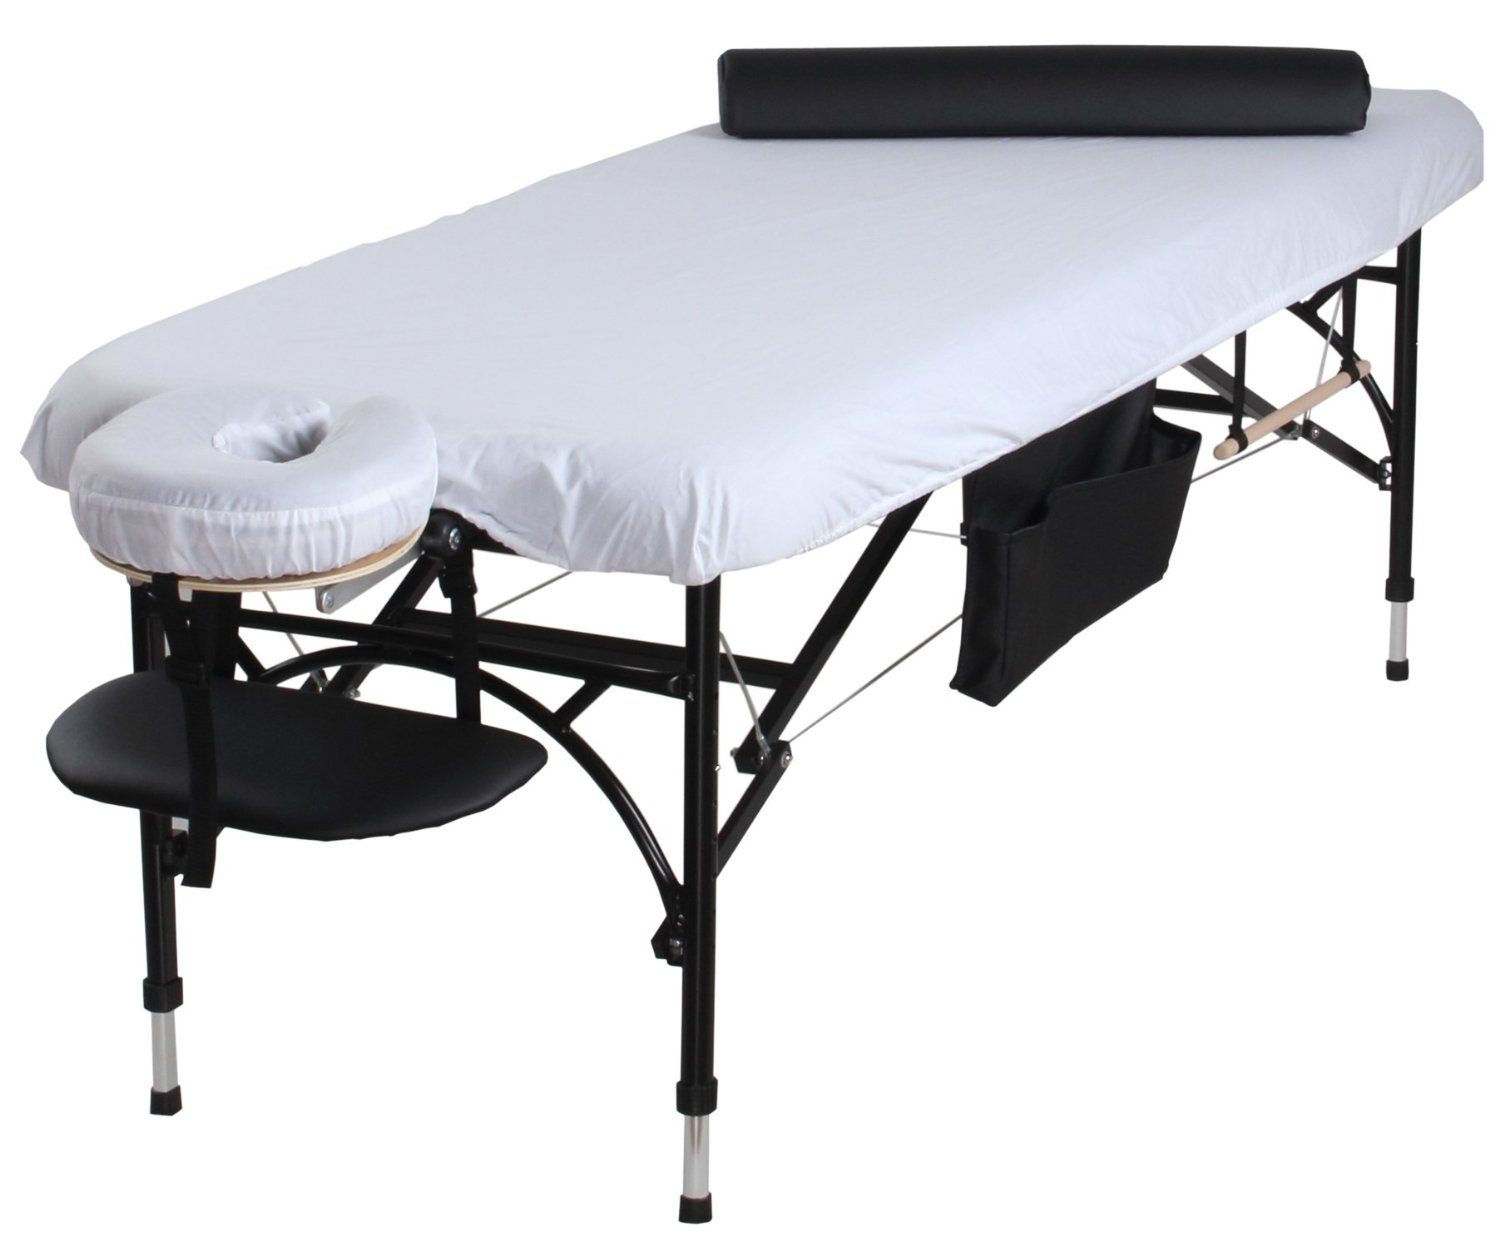 all sierra product massage comforter free health today comfort table portable inclusive shipping beauty overstock